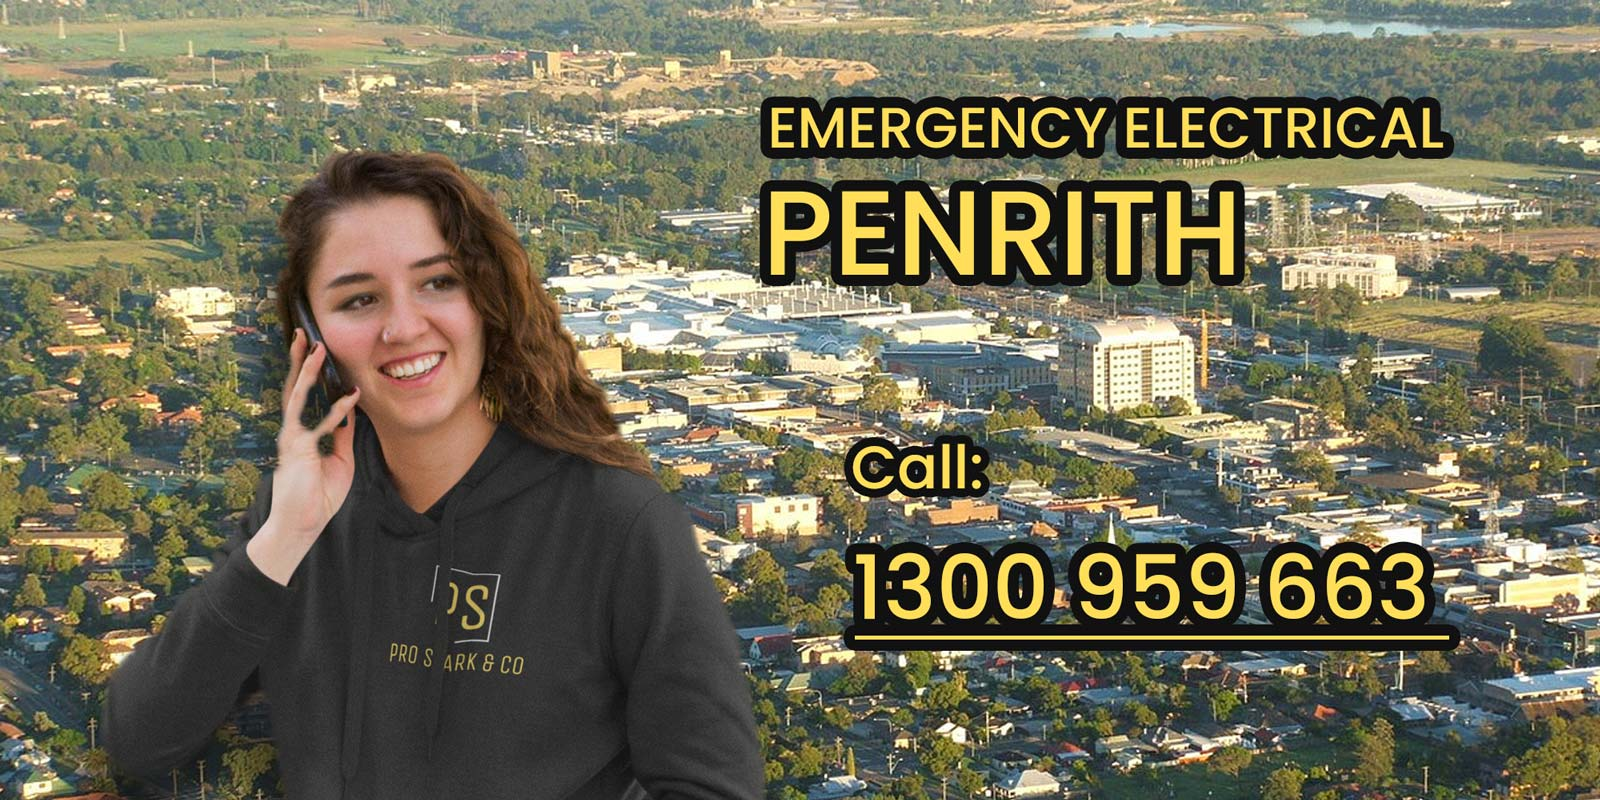 Emergency Electrician Penrith NSW | 24/7 Response